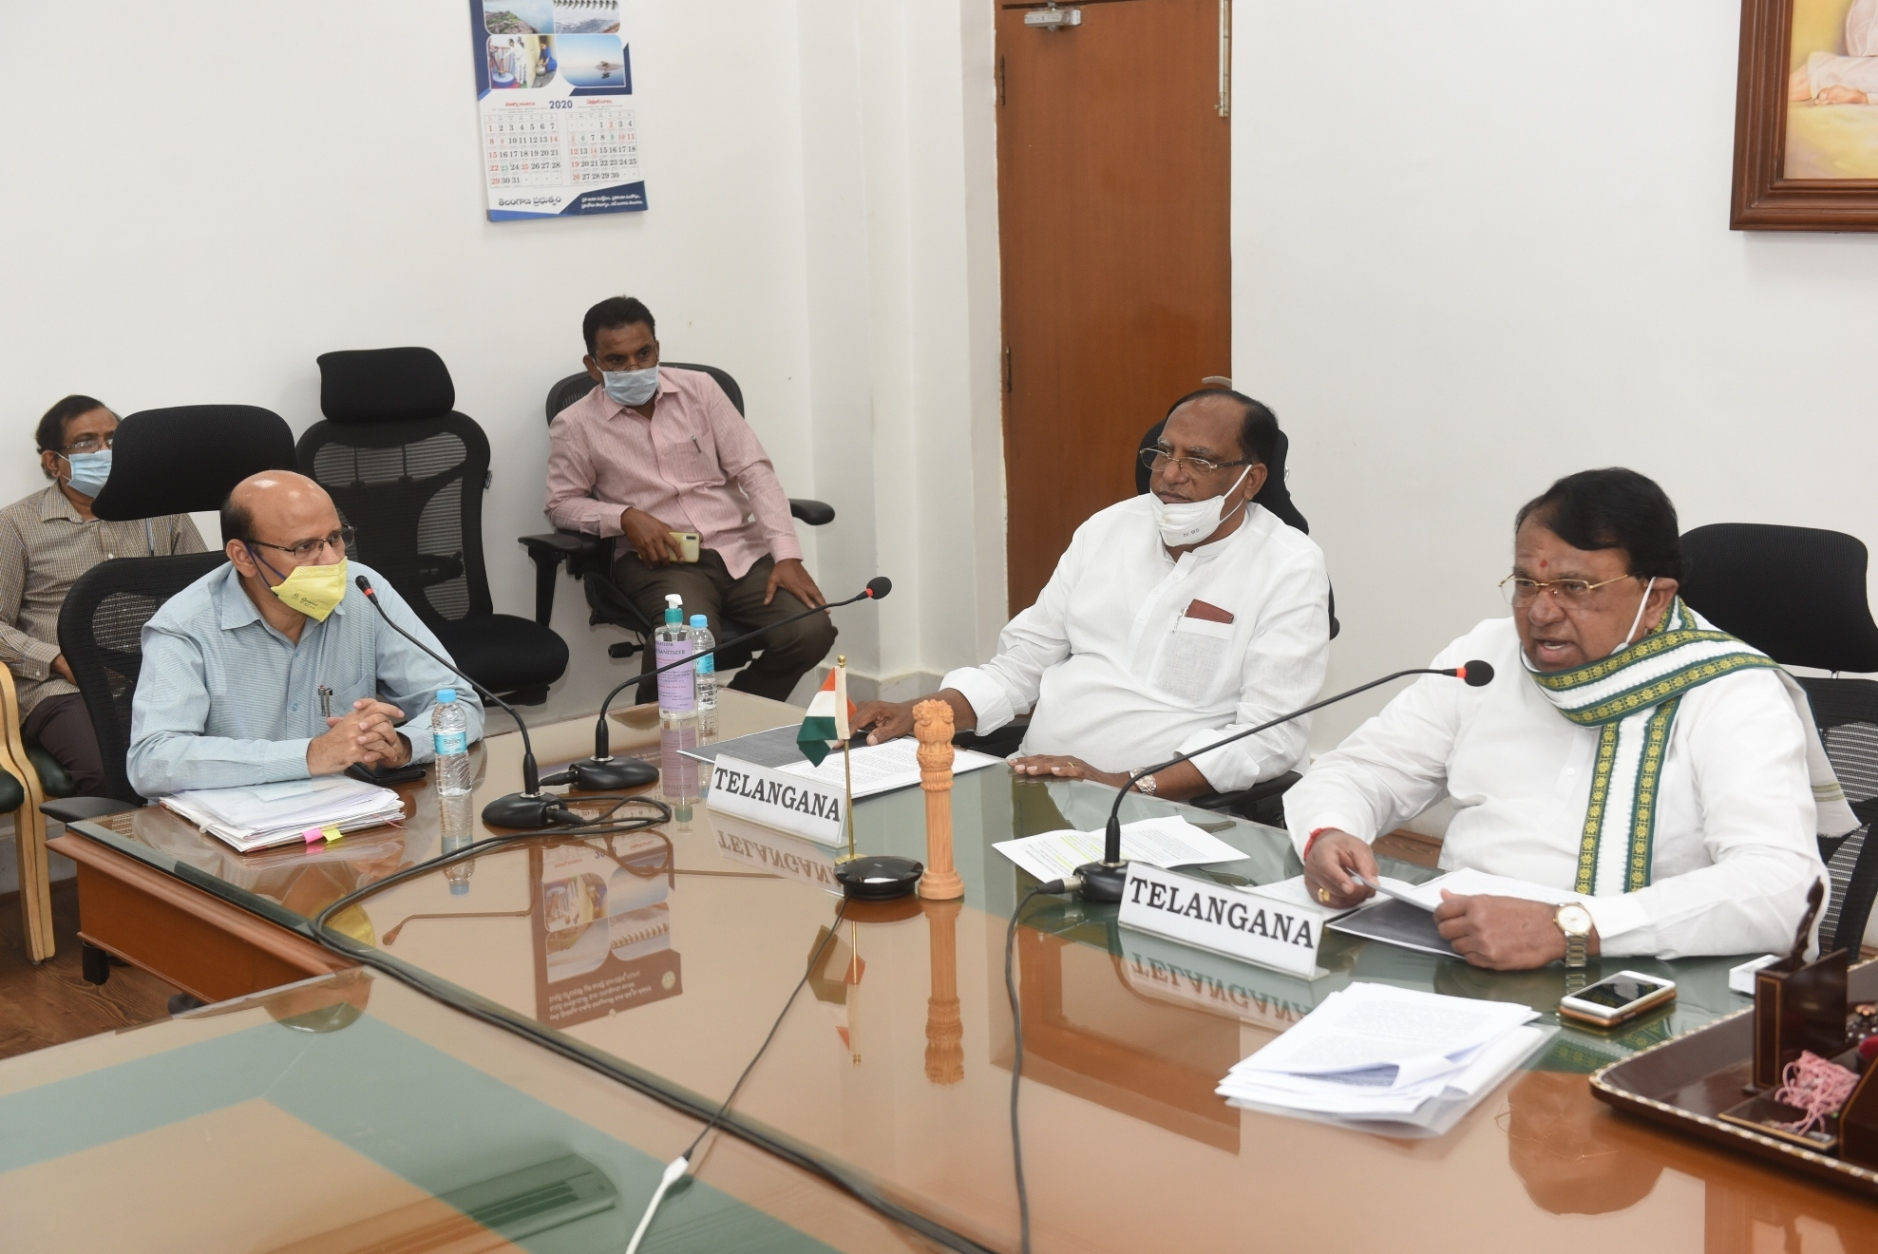 https://legislation.telanganalegislature.org.in//PreviewPage.tsl?filePath=basePath&fileName=Gallery/Presiding Officers of Telangana Legislature Video Conference with Honourable Speaker, Lok Sabha on 21.04.2020./6.JPG